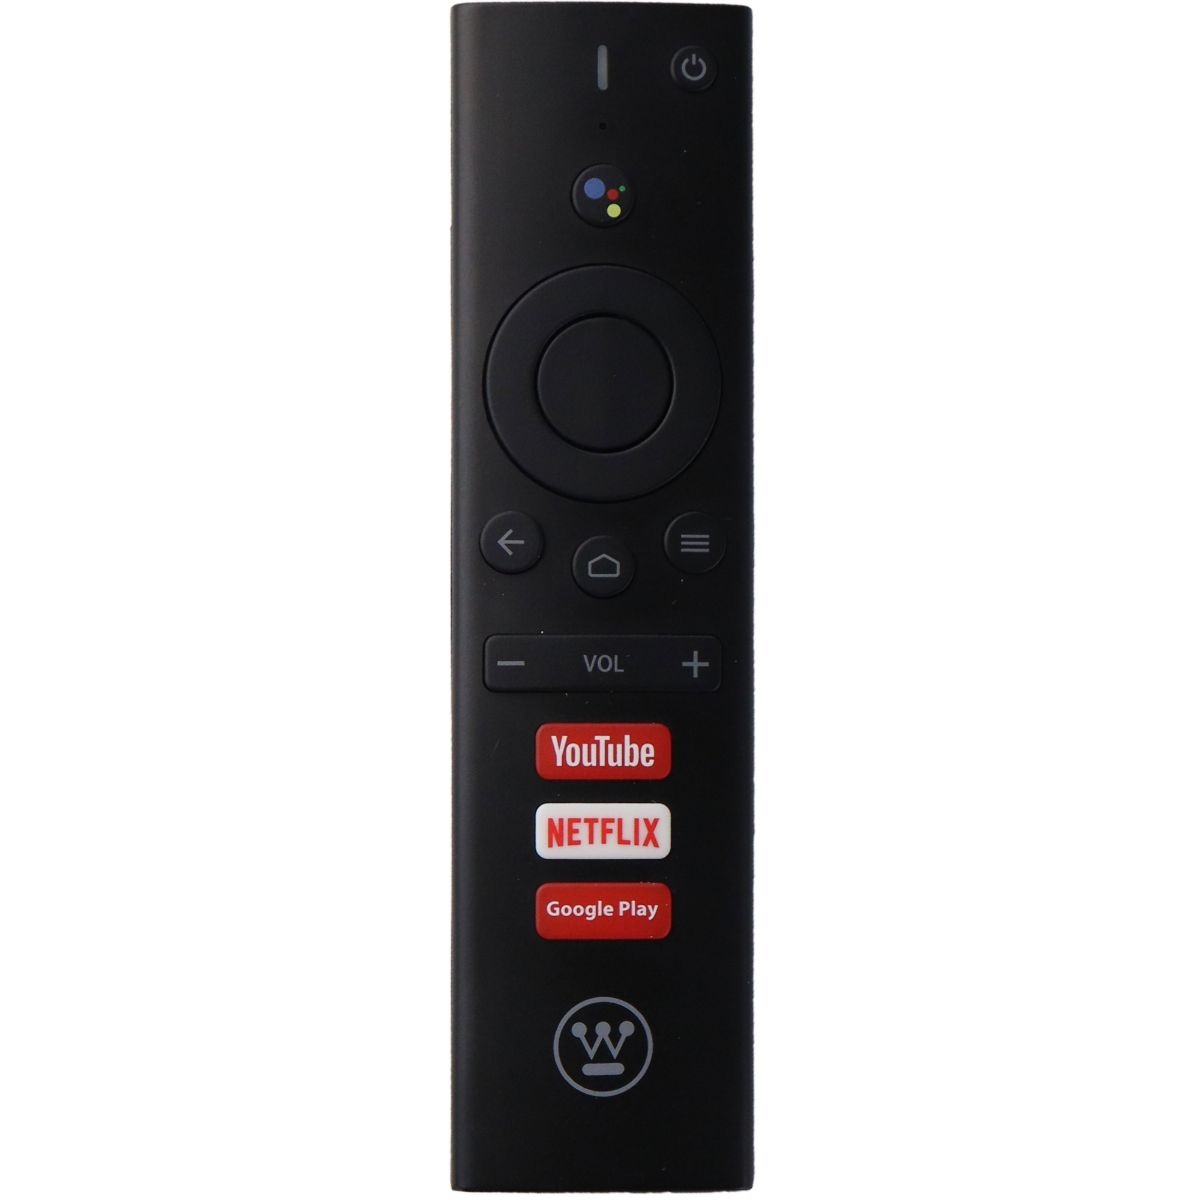 Westinghouse Smart TV Remote with Youtube / Netflix / Google Play Buttons- Black